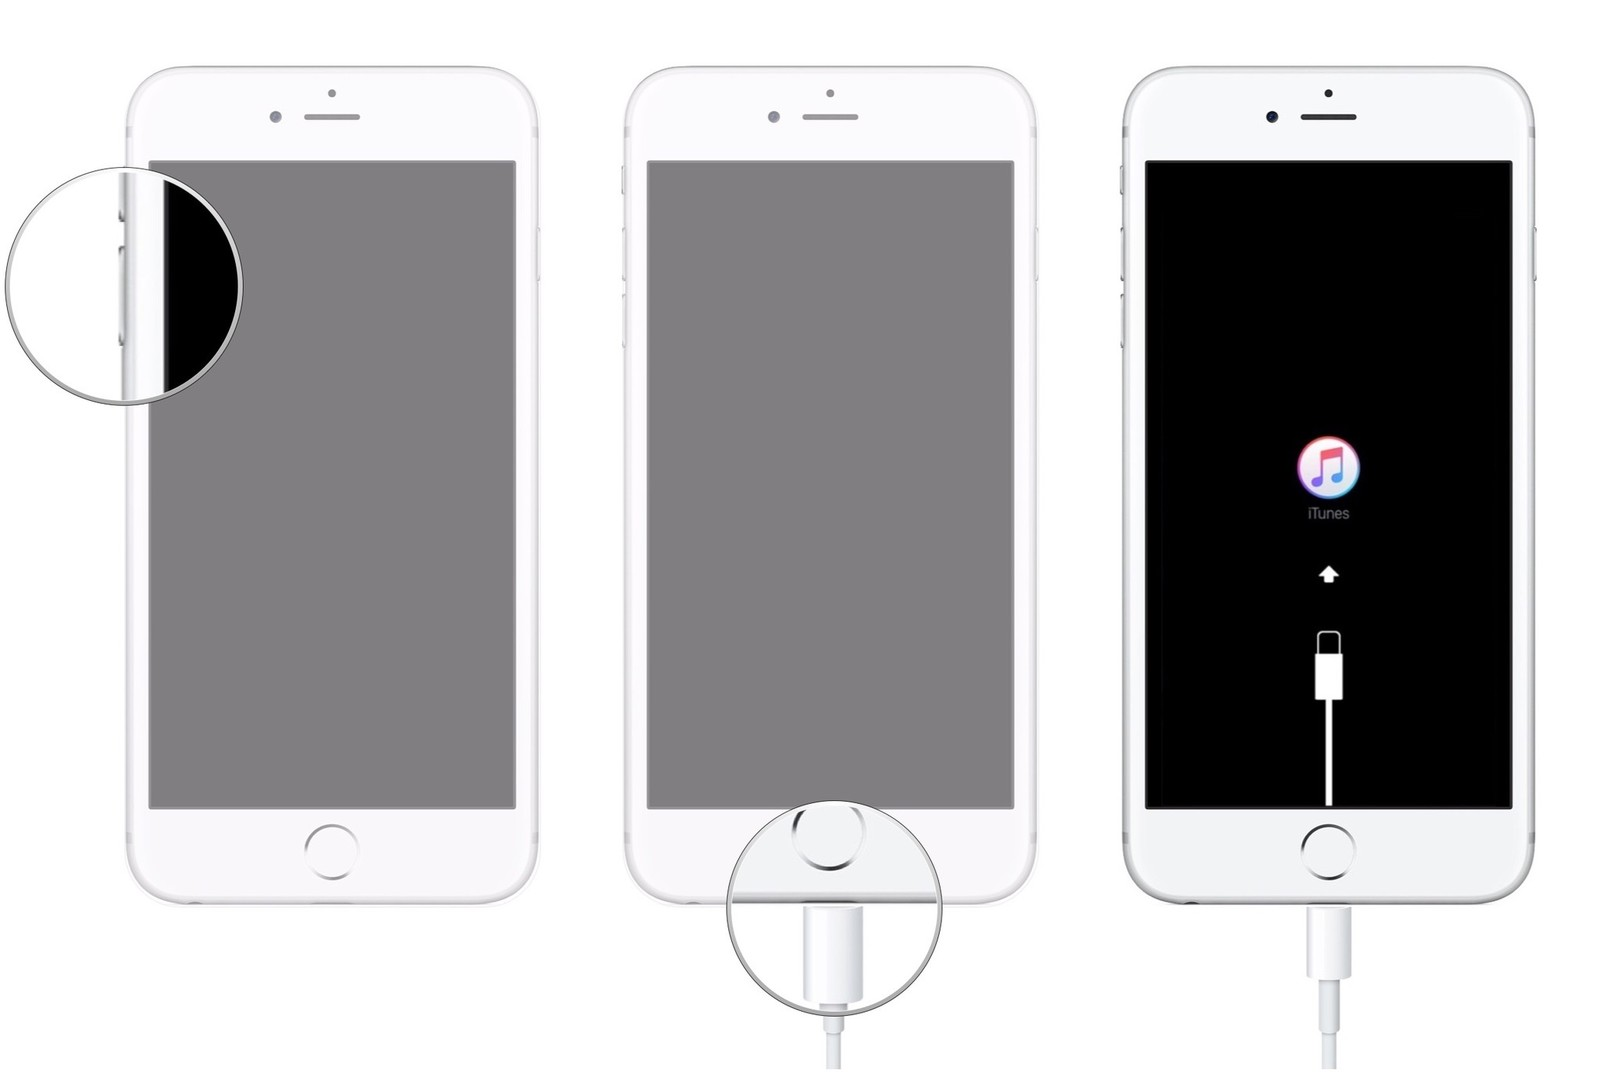 iphone 6s recovery Mode